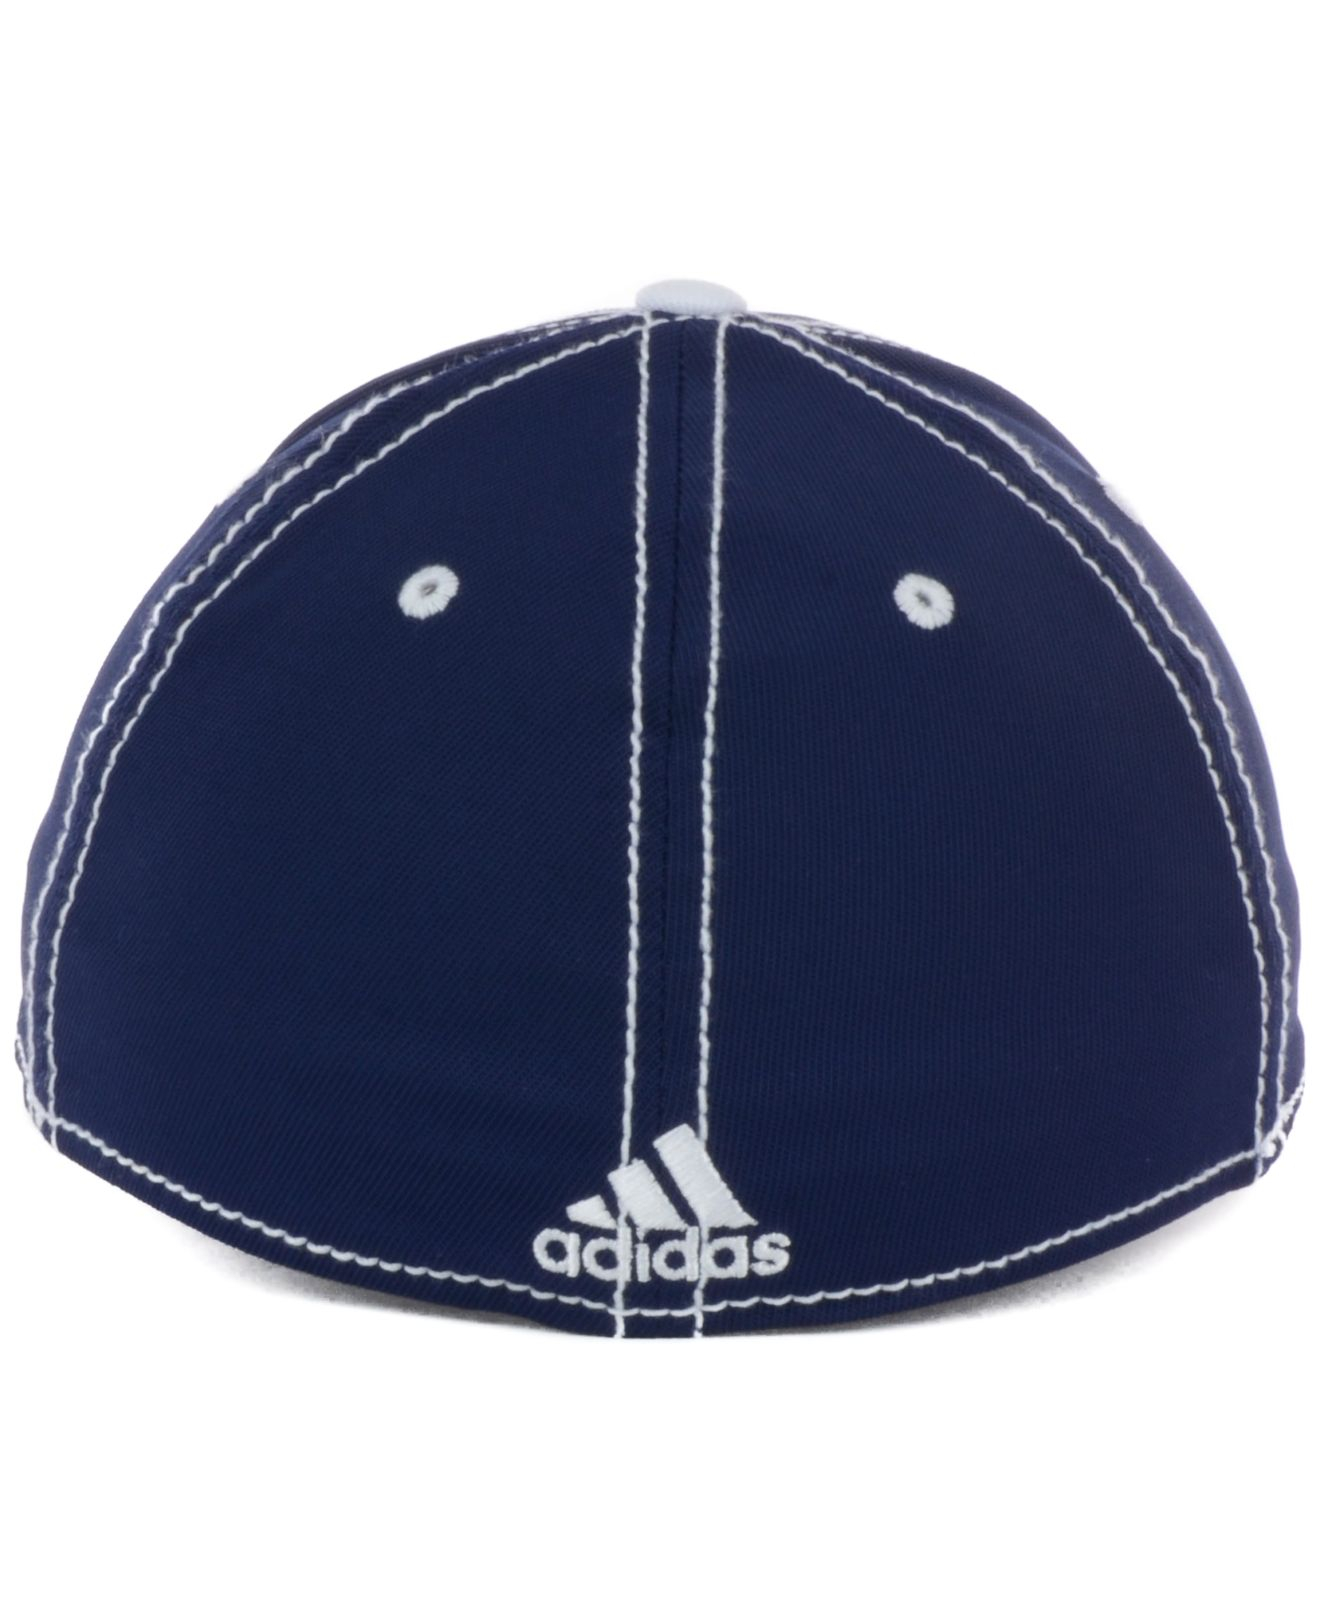 6d60177c396 Lyst - adidas Indiana Pacers Nba Primary Team Flex Cap in Blue for Men